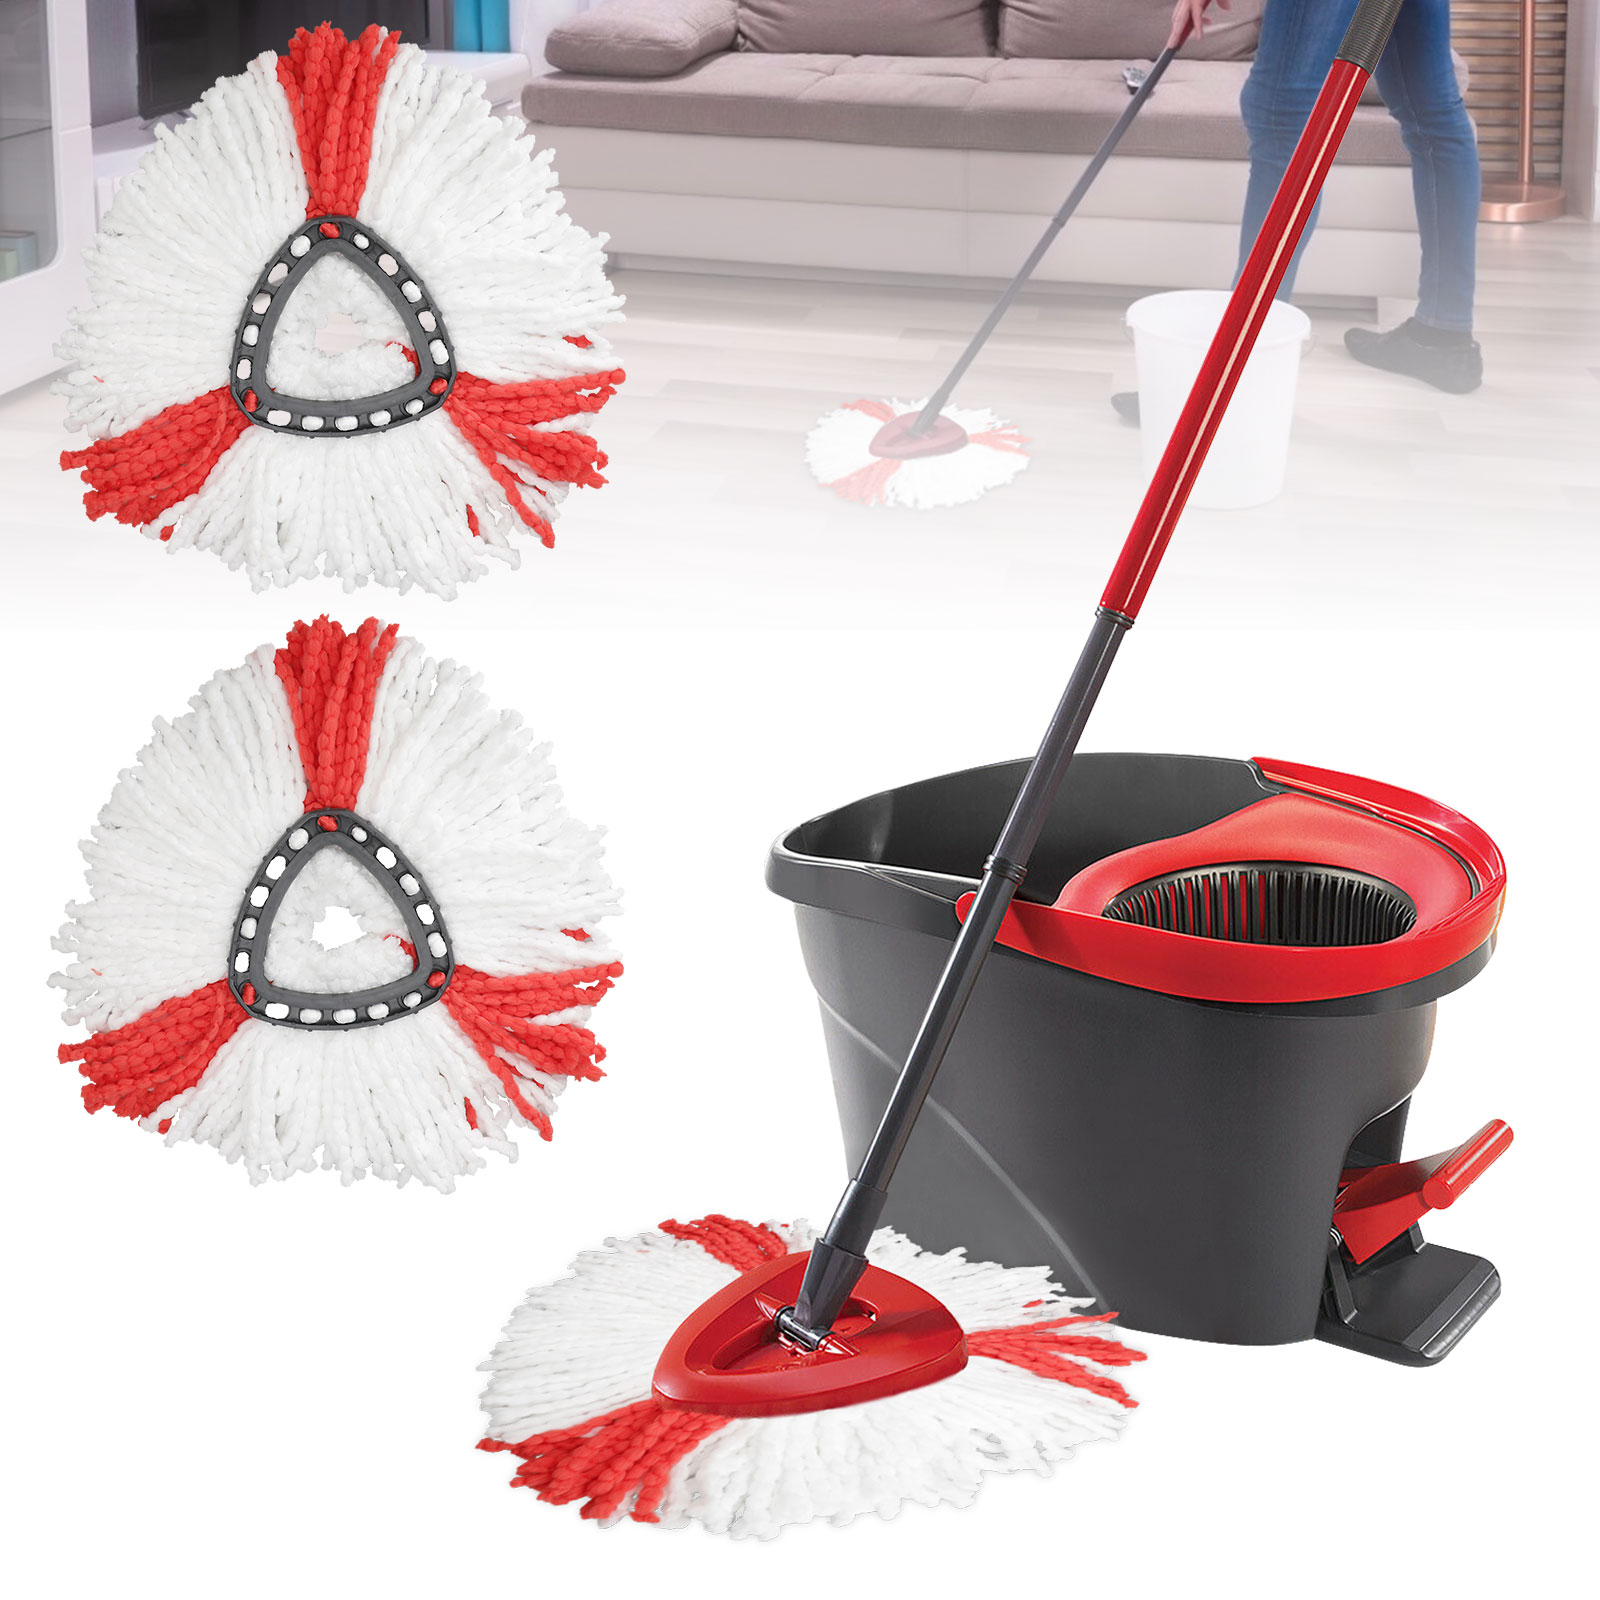 1PACK Replacement Head Microfiber Mopping Wring 360° Spin Refill Mop for O-Cedar